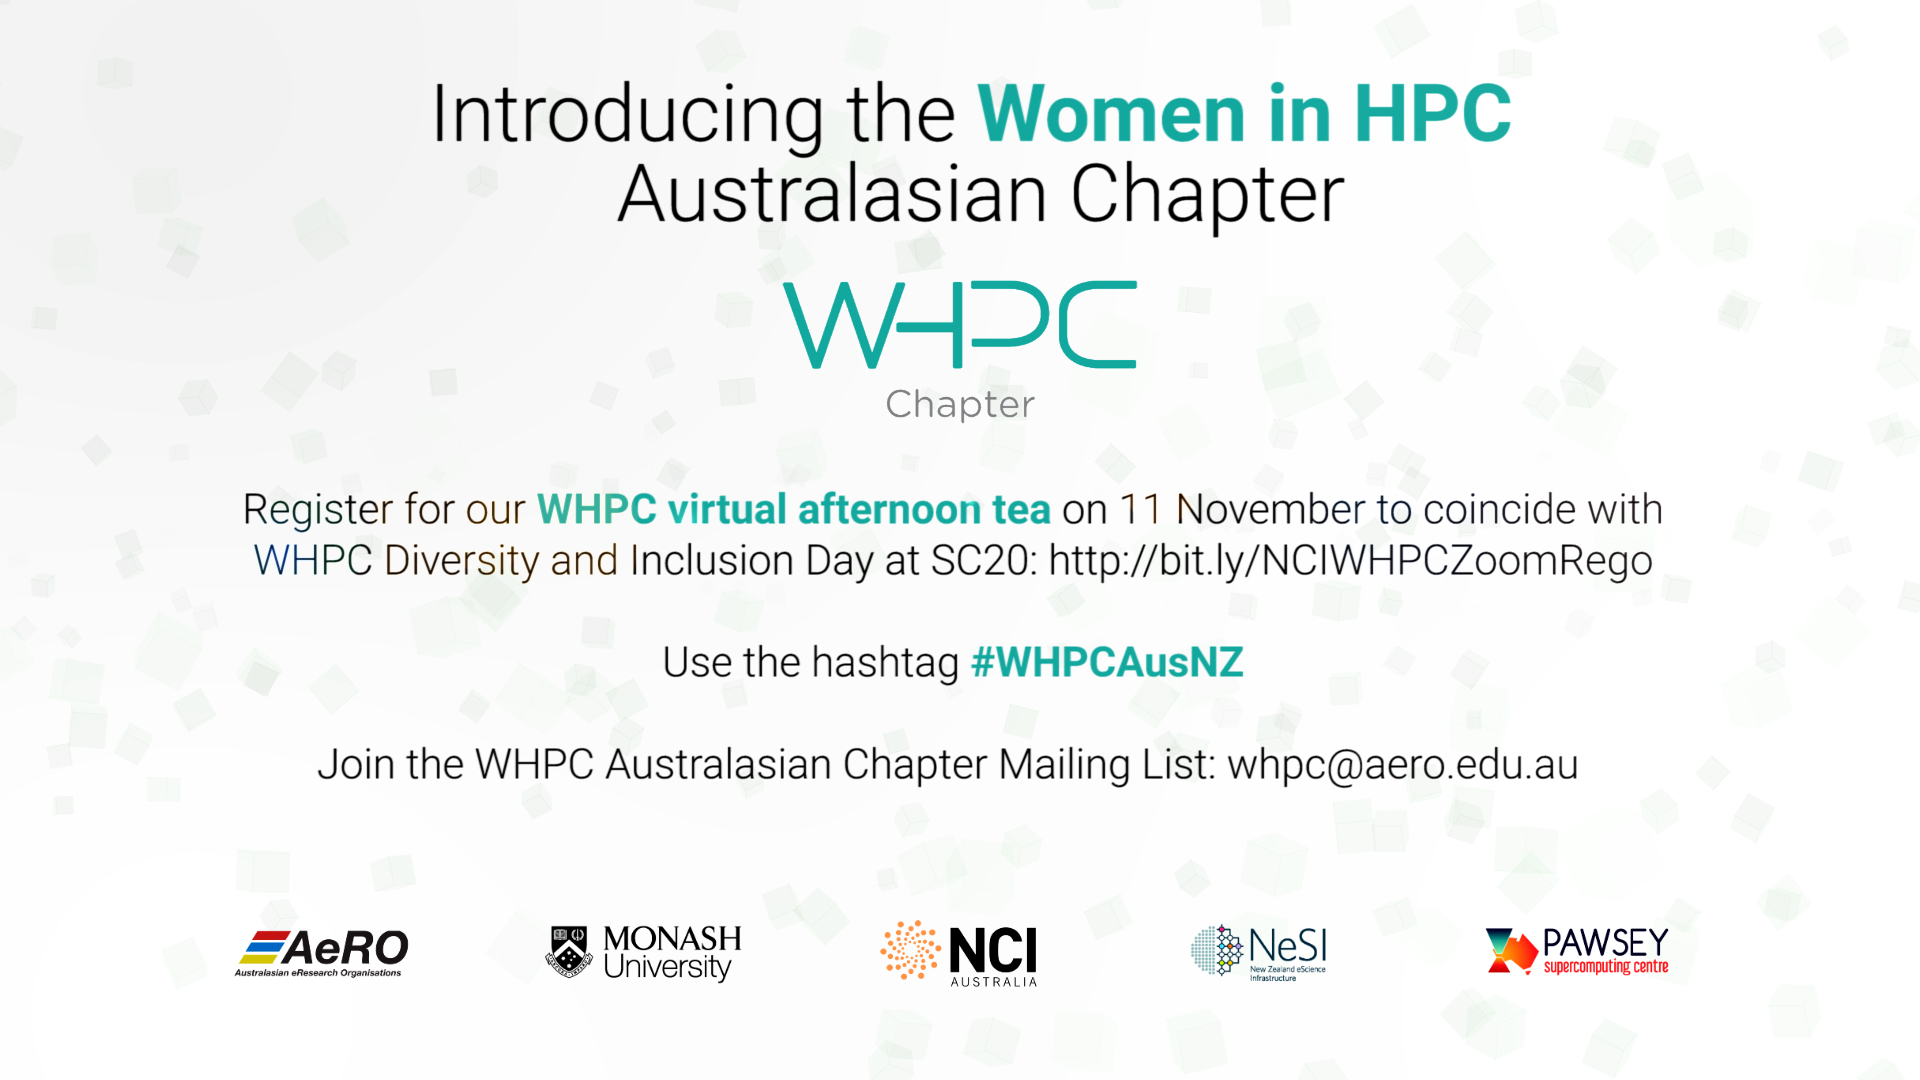 Invitation details for Australasia HPC Chapter afternoon tea event, Nov 11 at 2:30 pm AEDT